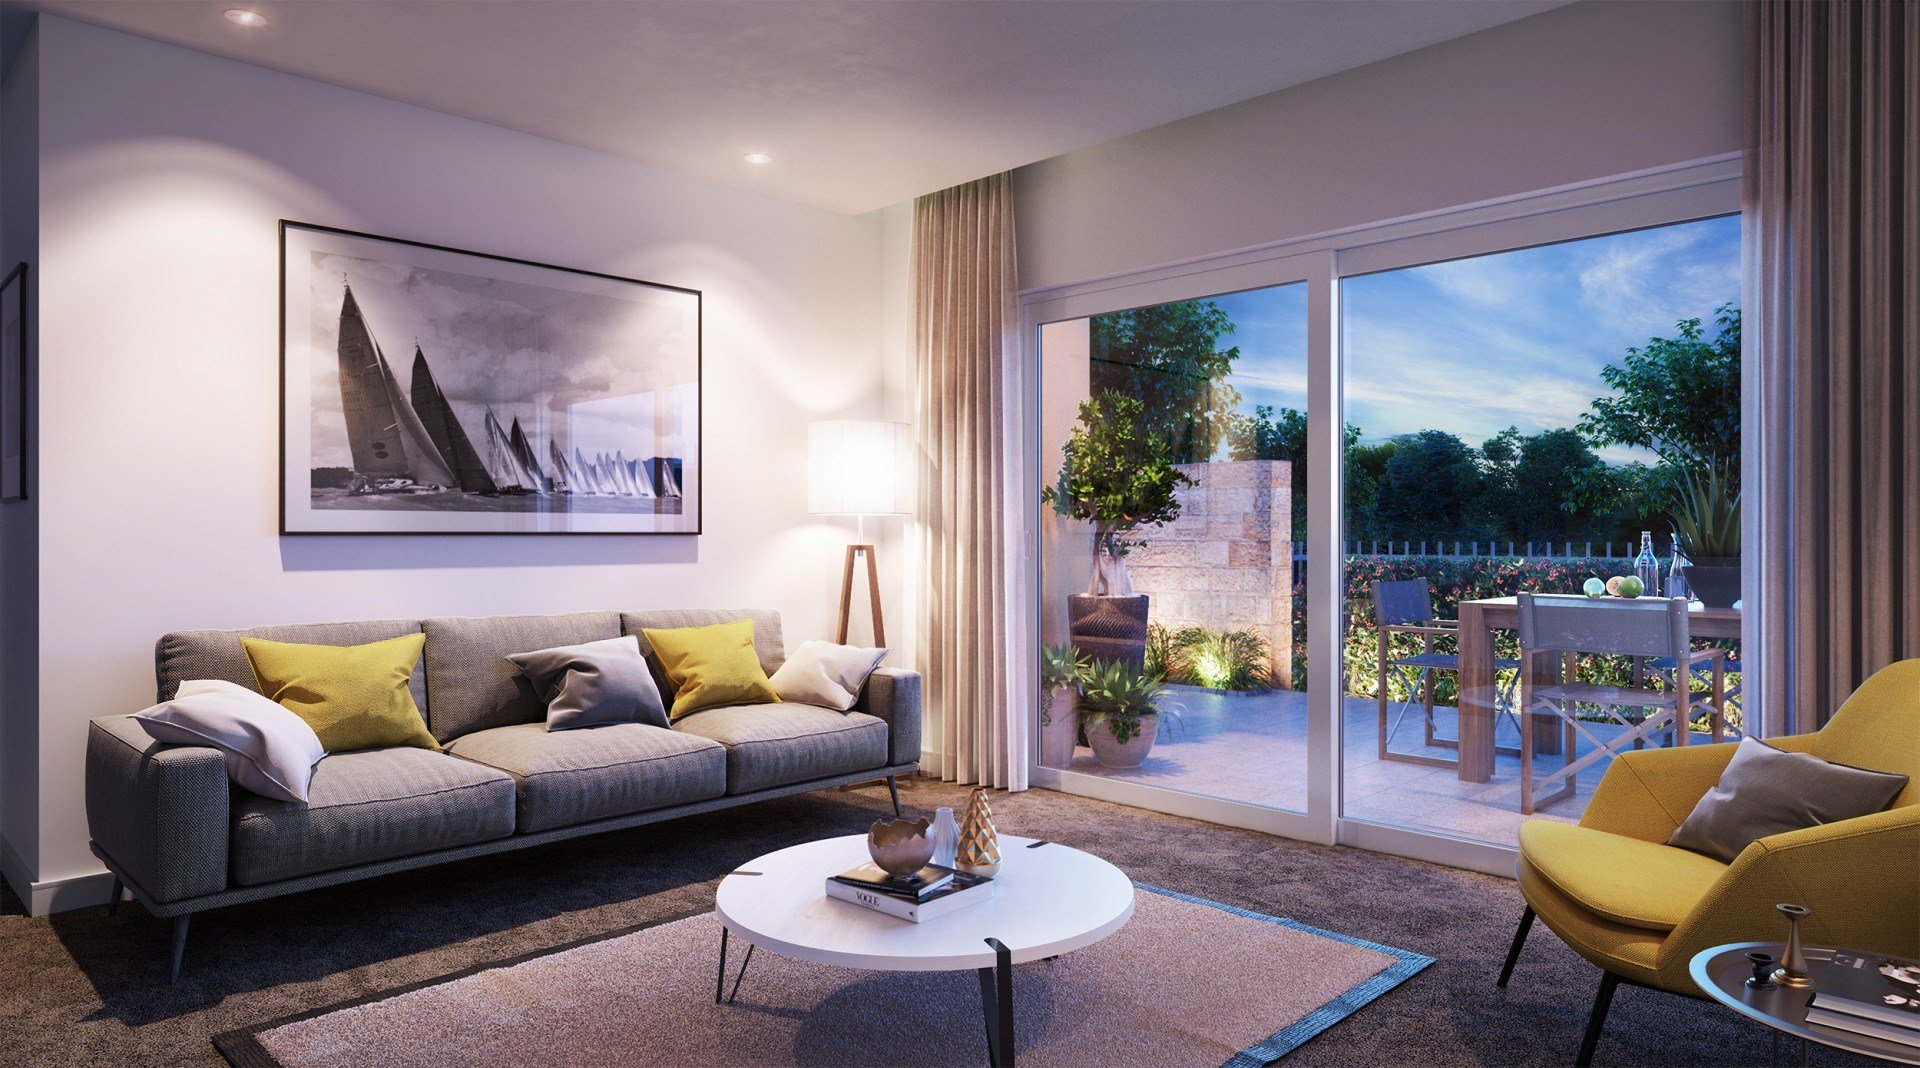 Best 3 Bedroom Townhouses – Goodwin With Pictures